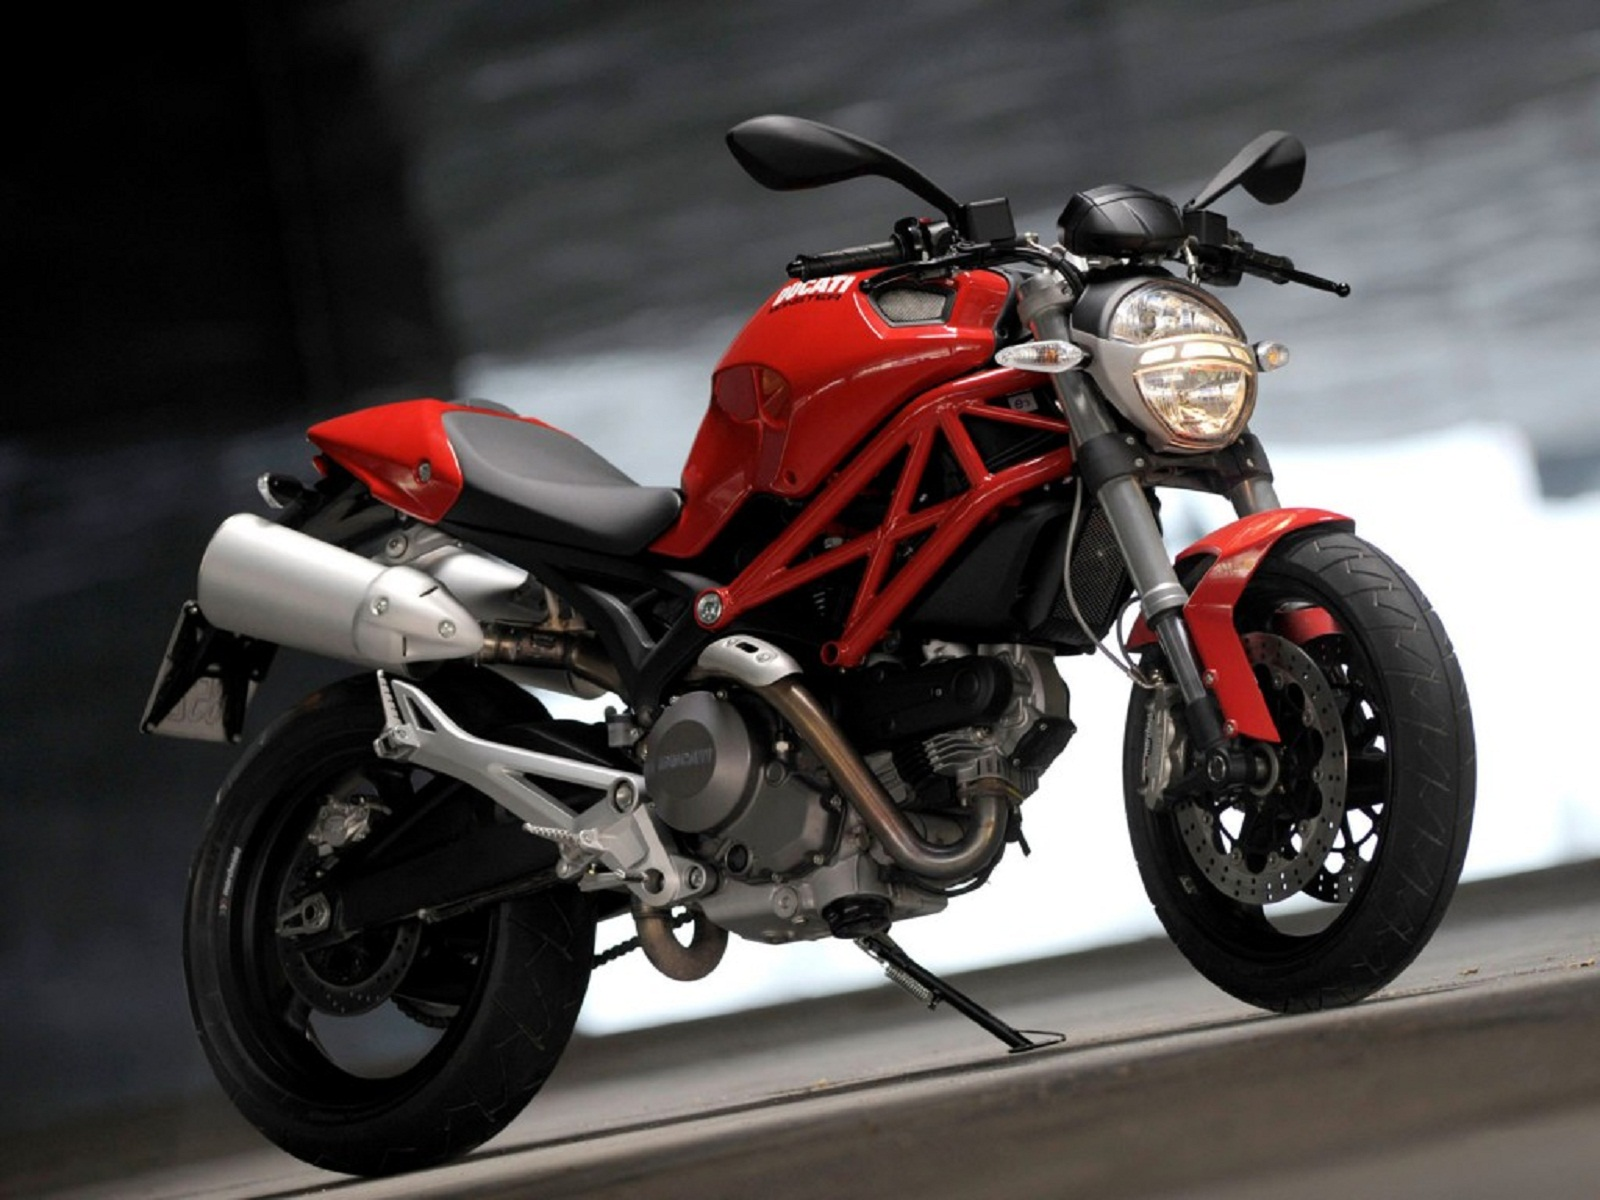 2012 ducati monster 696 review top speed. Black Bedroom Furniture Sets. Home Design Ideas